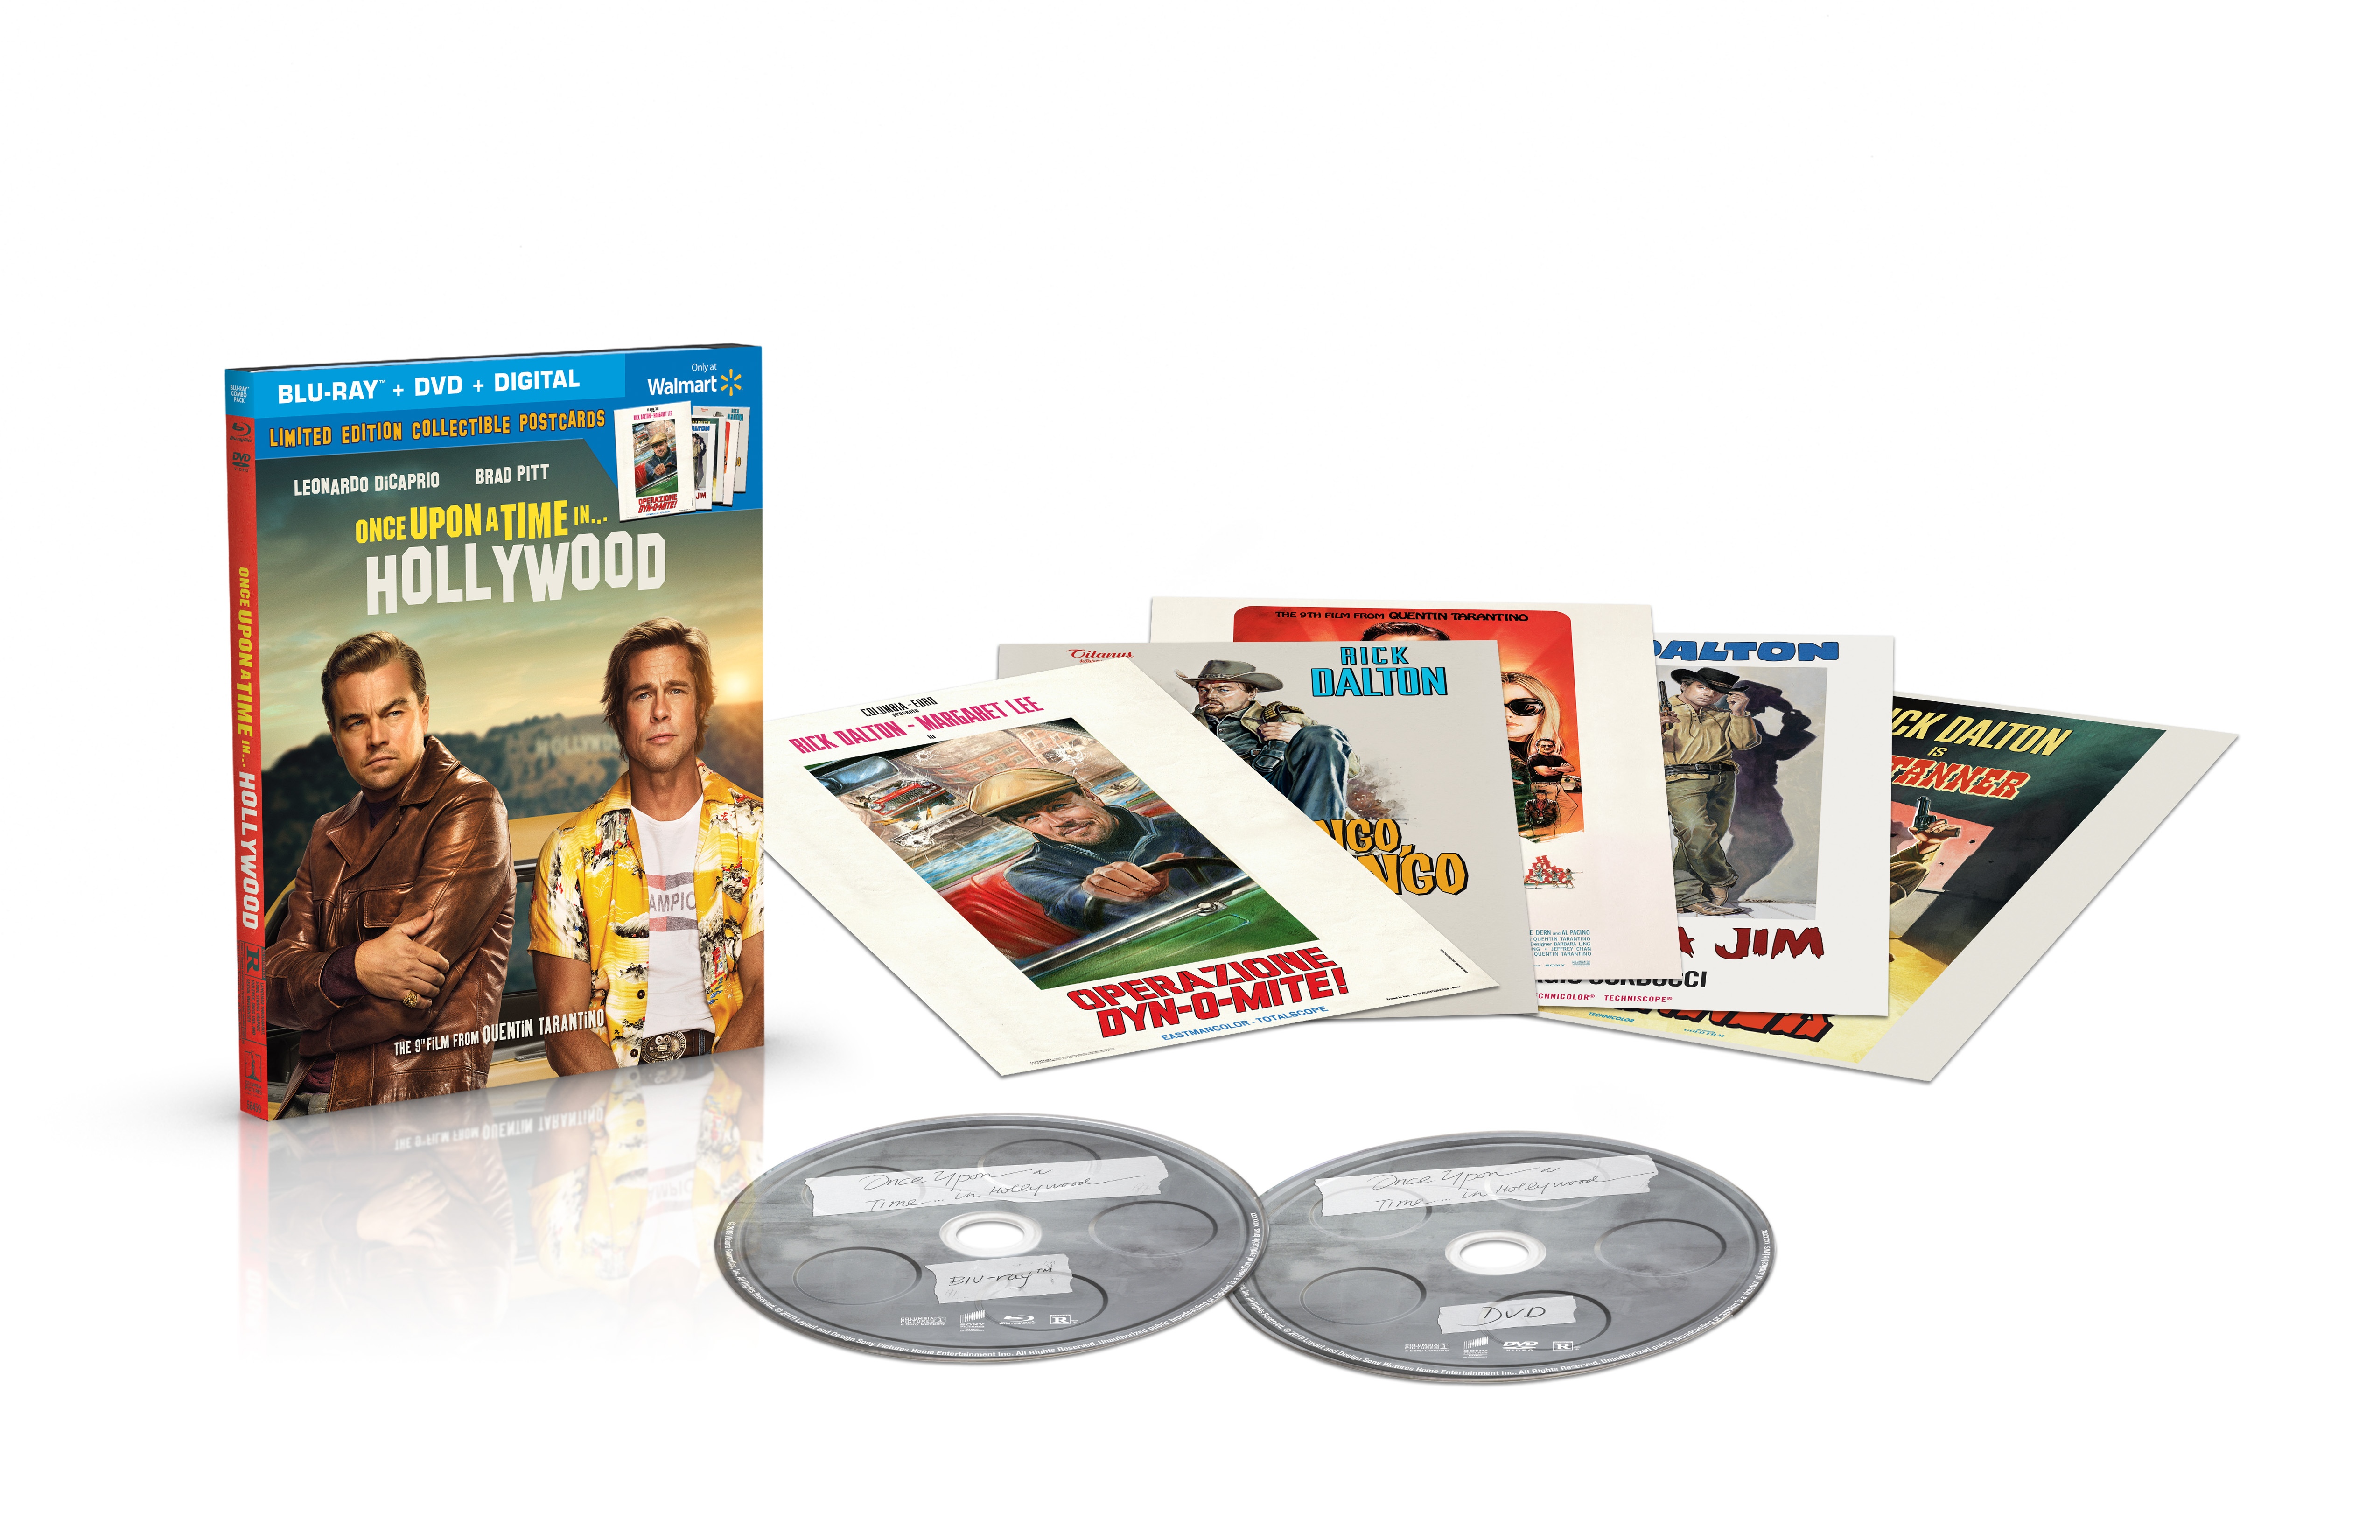 [News] ONCE UPON A TIME IN…HOLLYWOOD Coming to Blu-ray and DVD